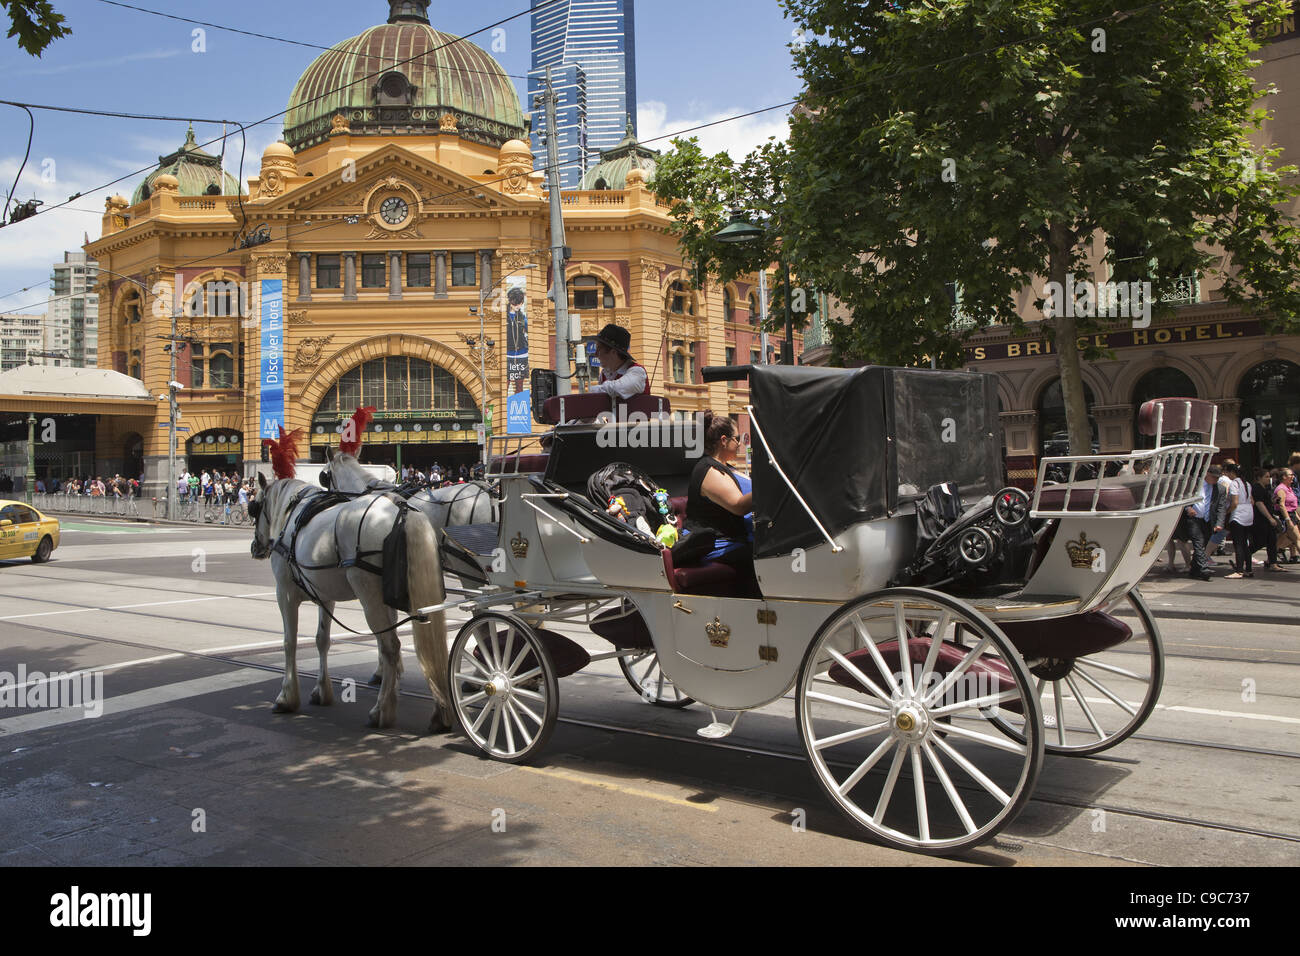 Sunny Melbourne day on the City transport systems. horse draw carriage at Flinders street station. Stock Photo